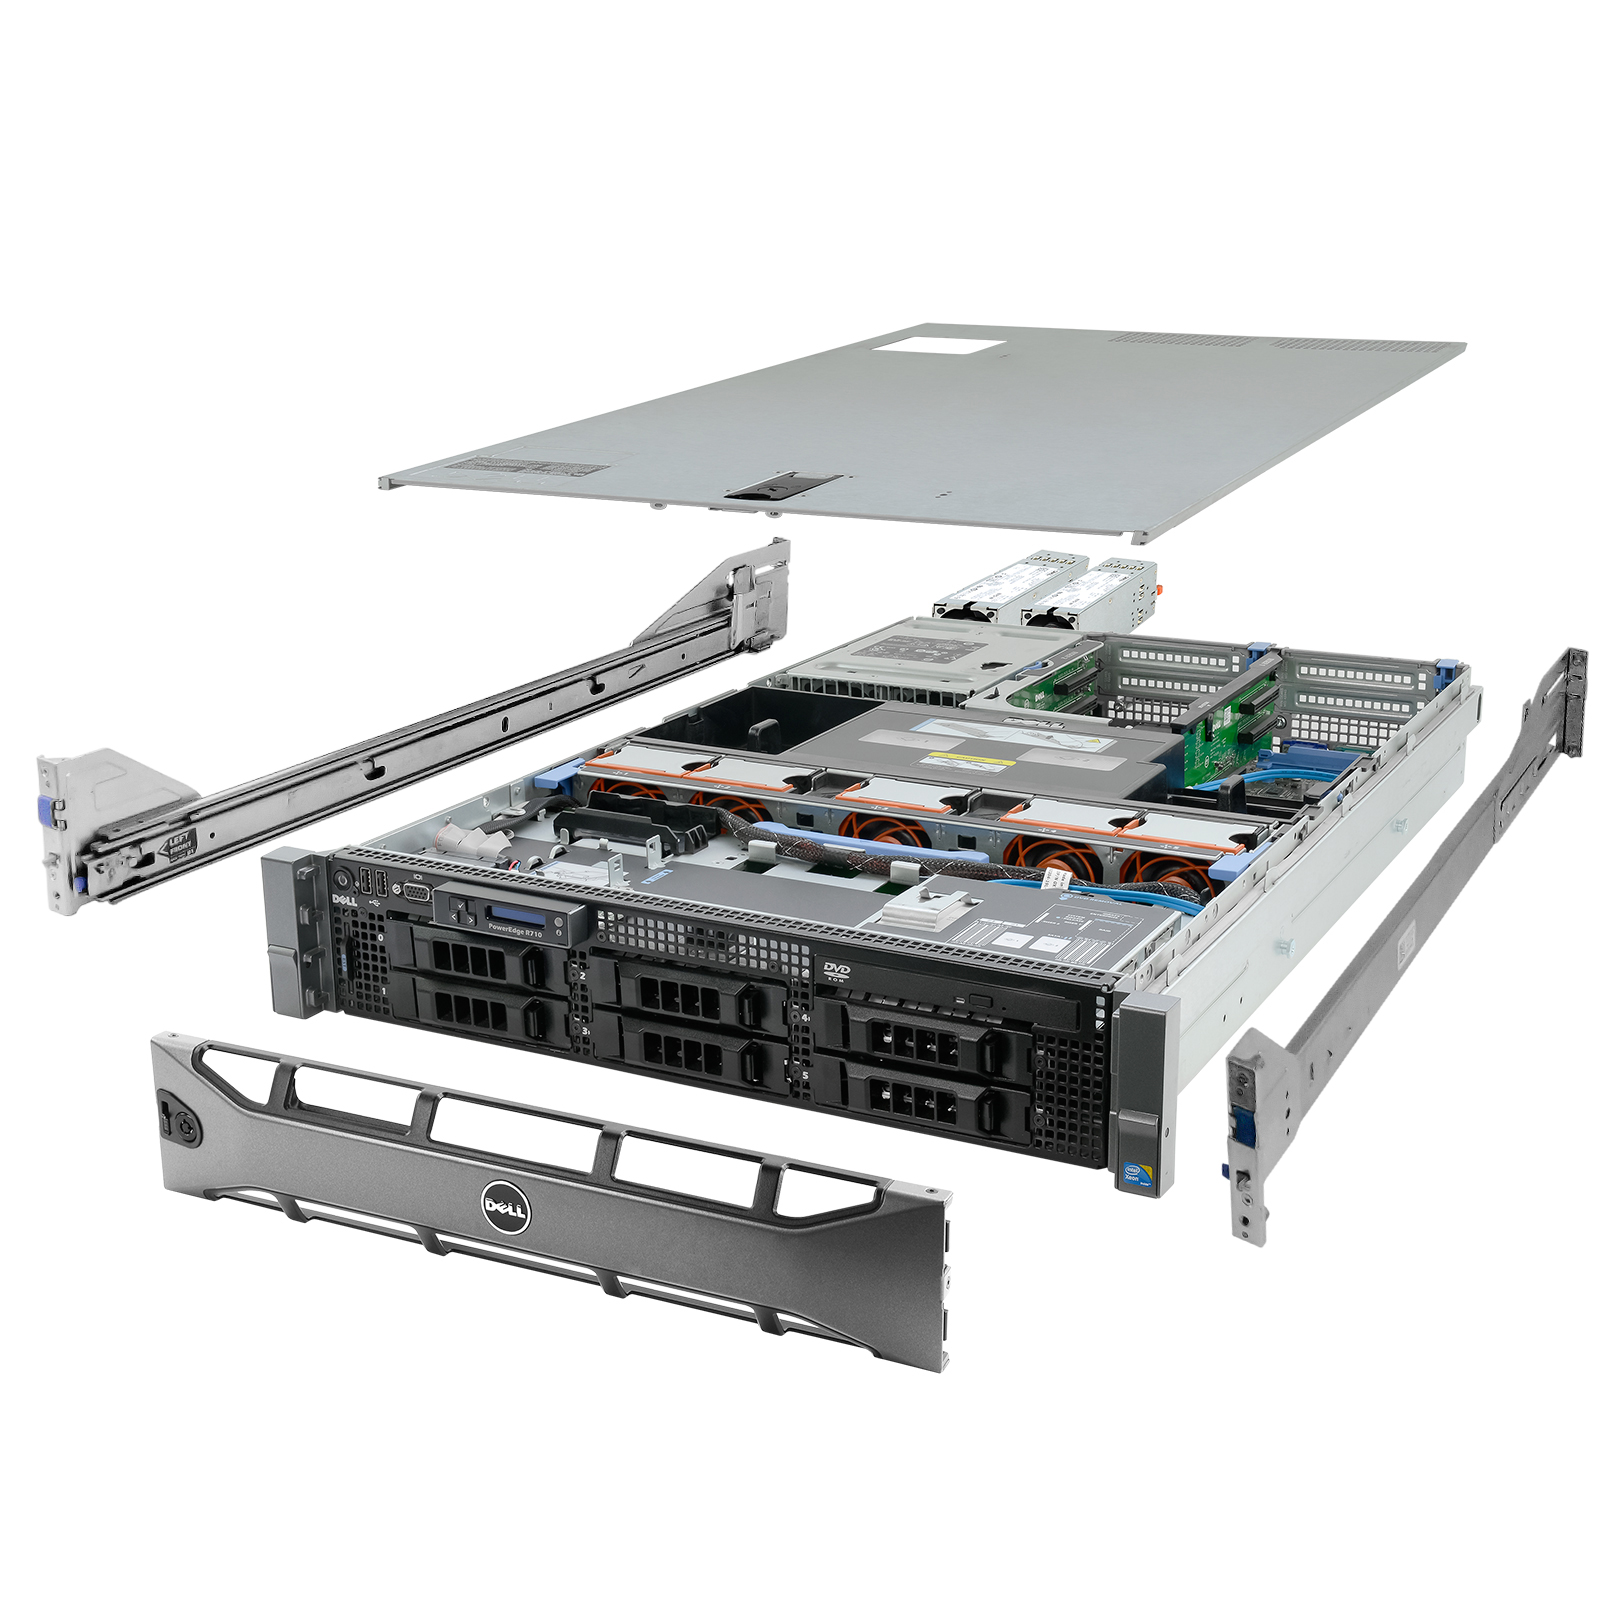 Details about High-End Virtualization Server 12-Core 128GB RAM 12TB RAID  Dell PowerEdge R710